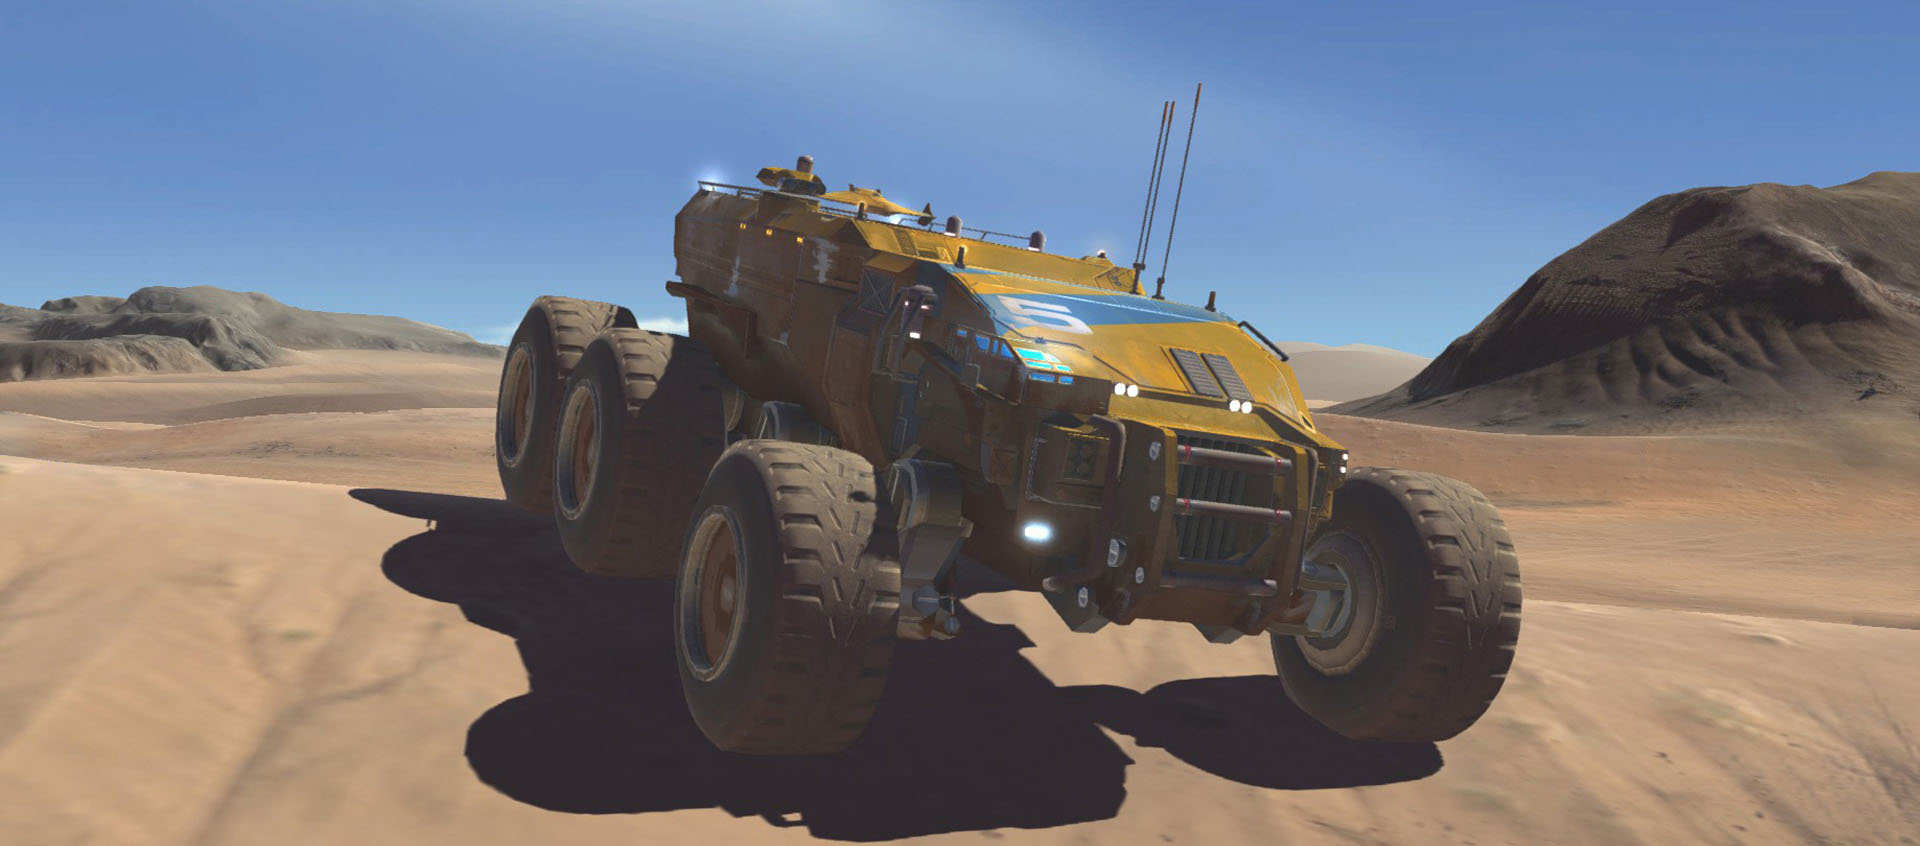 Homeworld Deserts of Kharak - VGProfessiona Review (3)